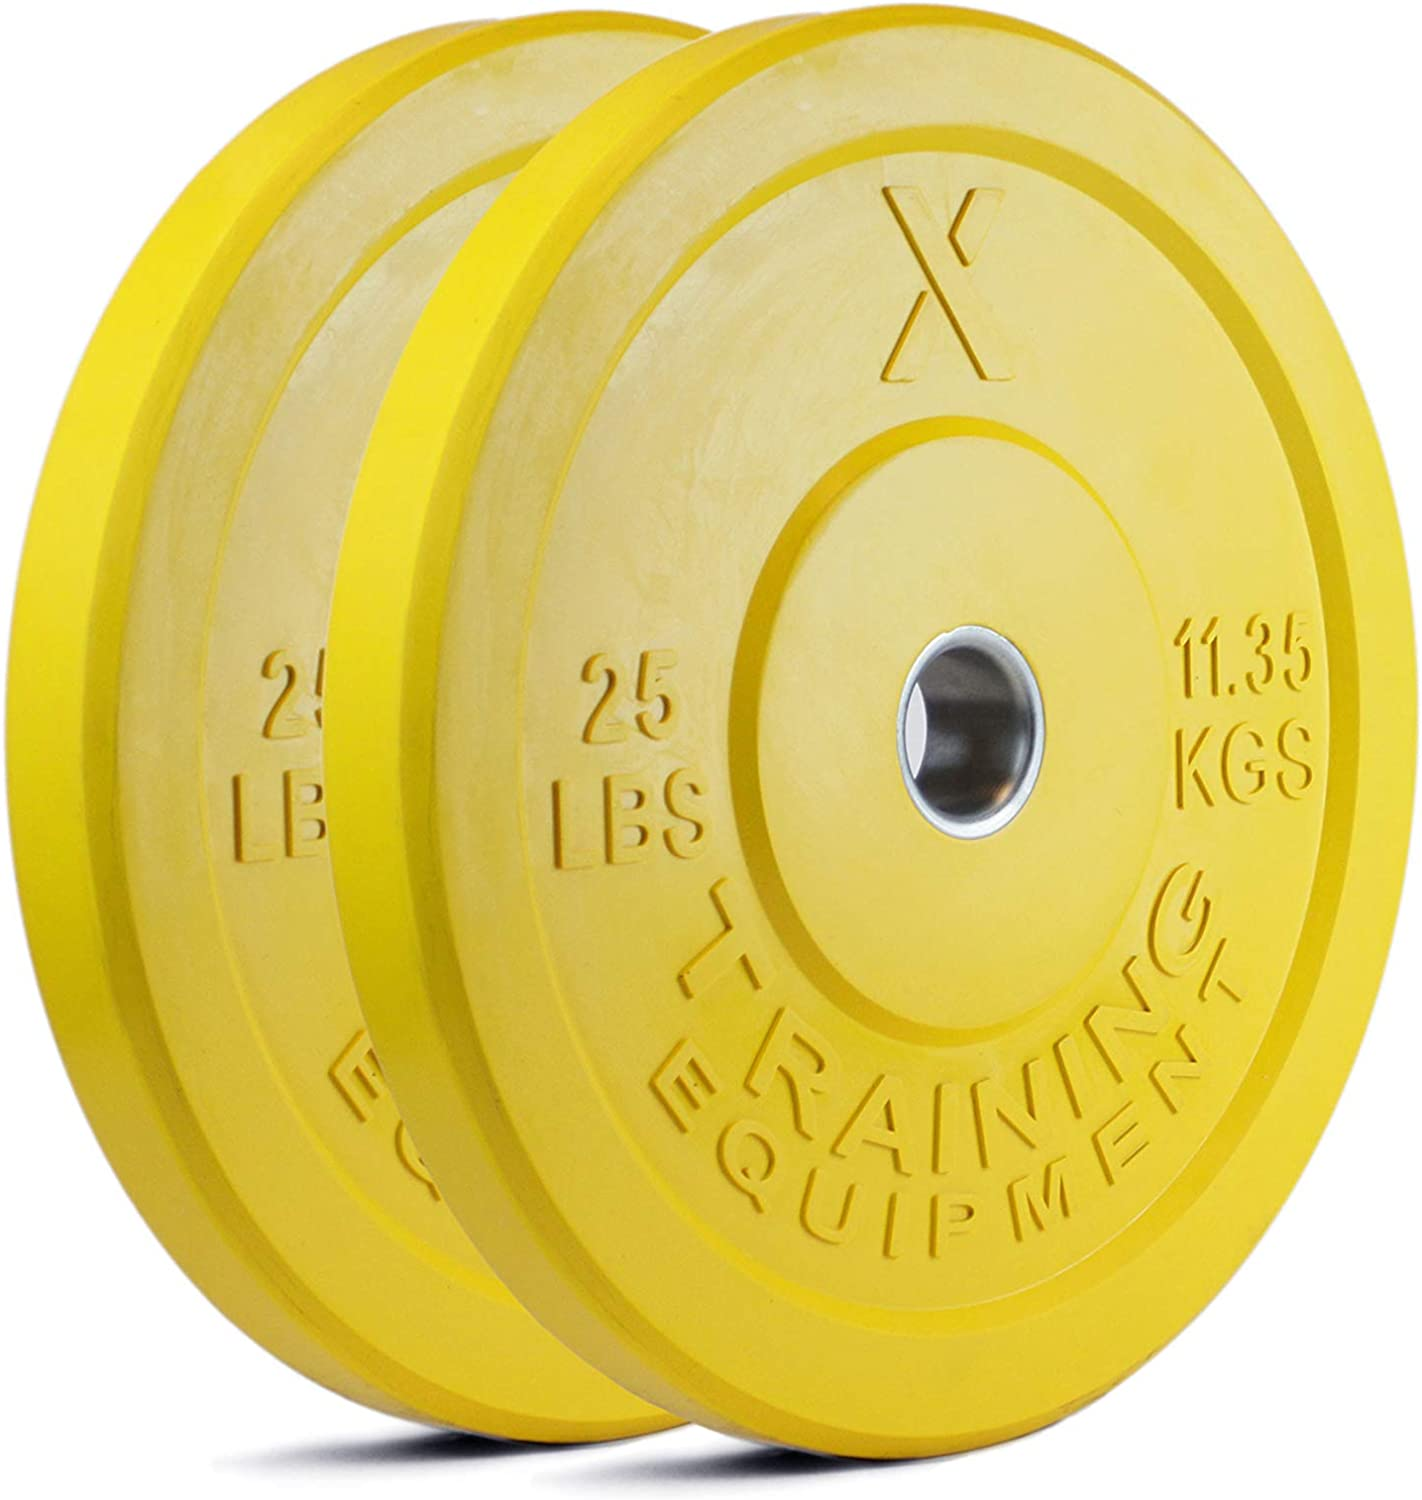 X Training Equipment Premium Color Bumper Plate Solid Rubber with Steel Insert – Great for Crosstraining Workouts